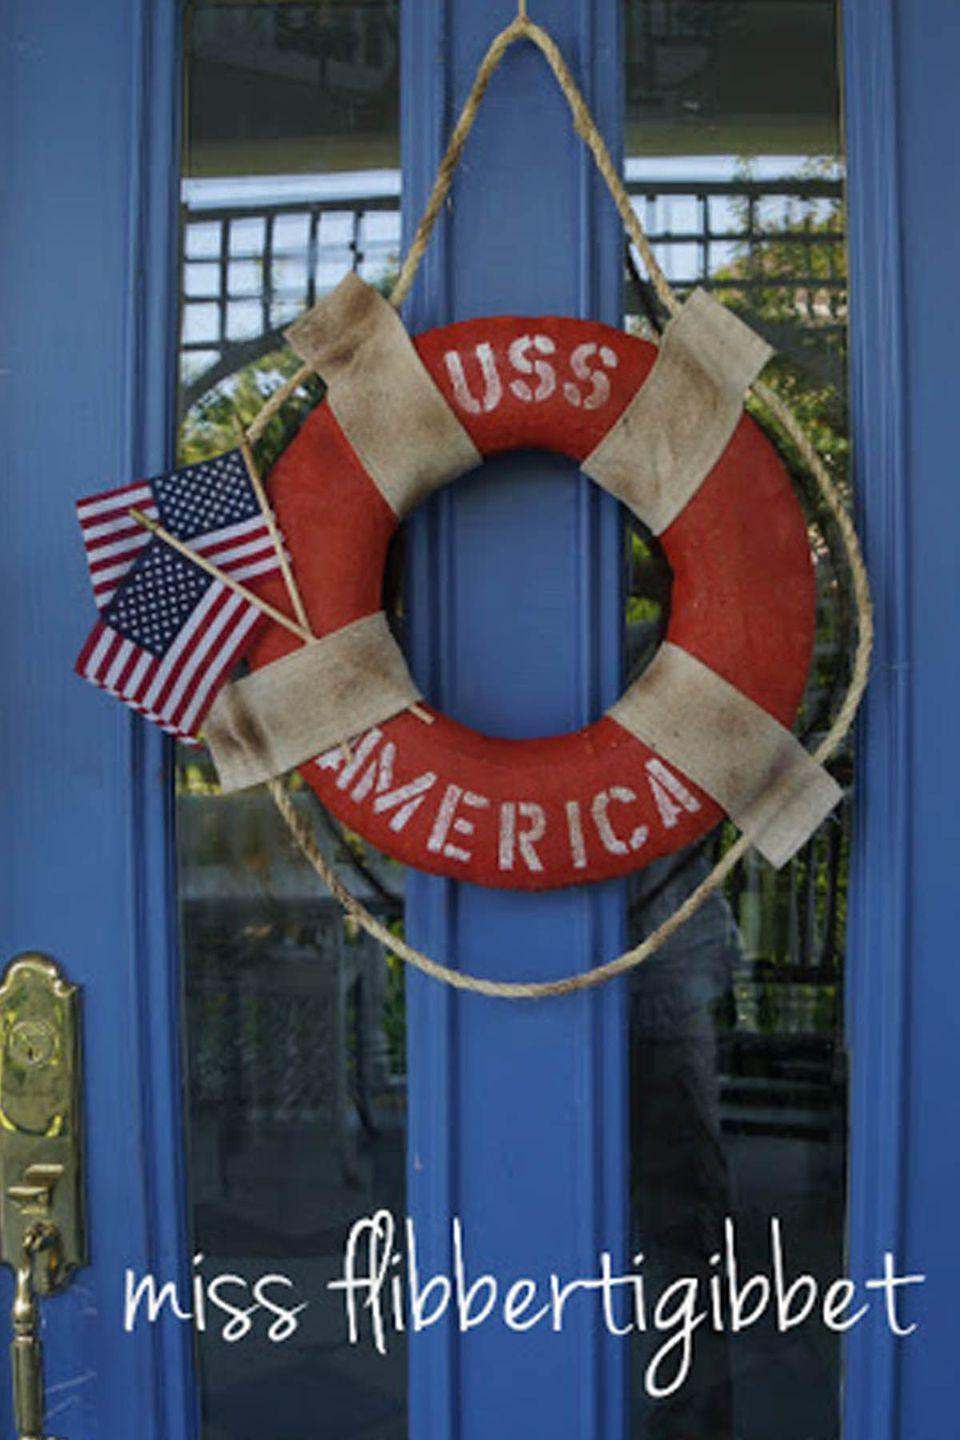 """<p>Infuse some nautical flair into your Independence Day decorations with this easy DIY project.</p><p><strong>Get the tutorial at <a href=""""http://www.missflibbertigibbet.com/2012/06/uss-america-and-my-first-linky-party.html"""" rel=""""nofollow noopener"""" target=""""_blank"""" data-ylk=""""slk:Miss Flibbertigibbet"""" class=""""link rapid-noclick-resp"""">Miss Flibbertigibbet</a>. </strong></p><p><strong><a class=""""link rapid-noclick-resp"""" href=""""https://www.amazon.com/Hampton-Nautical-Lifering-20-Red/dp/B00GA1XD1G/ref=pd_day0_5/132-5774707-0562635?pd_rd_w=4X3cB&pf_rd_p=8ca997d7-1ea0-4c8f-9e14-a6d756b83e30&pf_rd_r=BCSBAQDESBQR3BDWA7KV&pd_rd_r=98f2c9cb-c78d-42b1-b885-8fbdb9db2685&pd_rd_wg=Nv7qI&pd_rd_i=B00GA1XD1G&psc=1&tag=syn-yahoo-20&ascsubtag=%5Bartid%7C10050.g.4464%5Bsrc%7Cyahoo-us"""" rel=""""nofollow noopener"""" target=""""_blank"""" data-ylk=""""slk:SHOP LIFE RINGS"""">SHOP LIFE RINGS</a><br></strong></p>"""